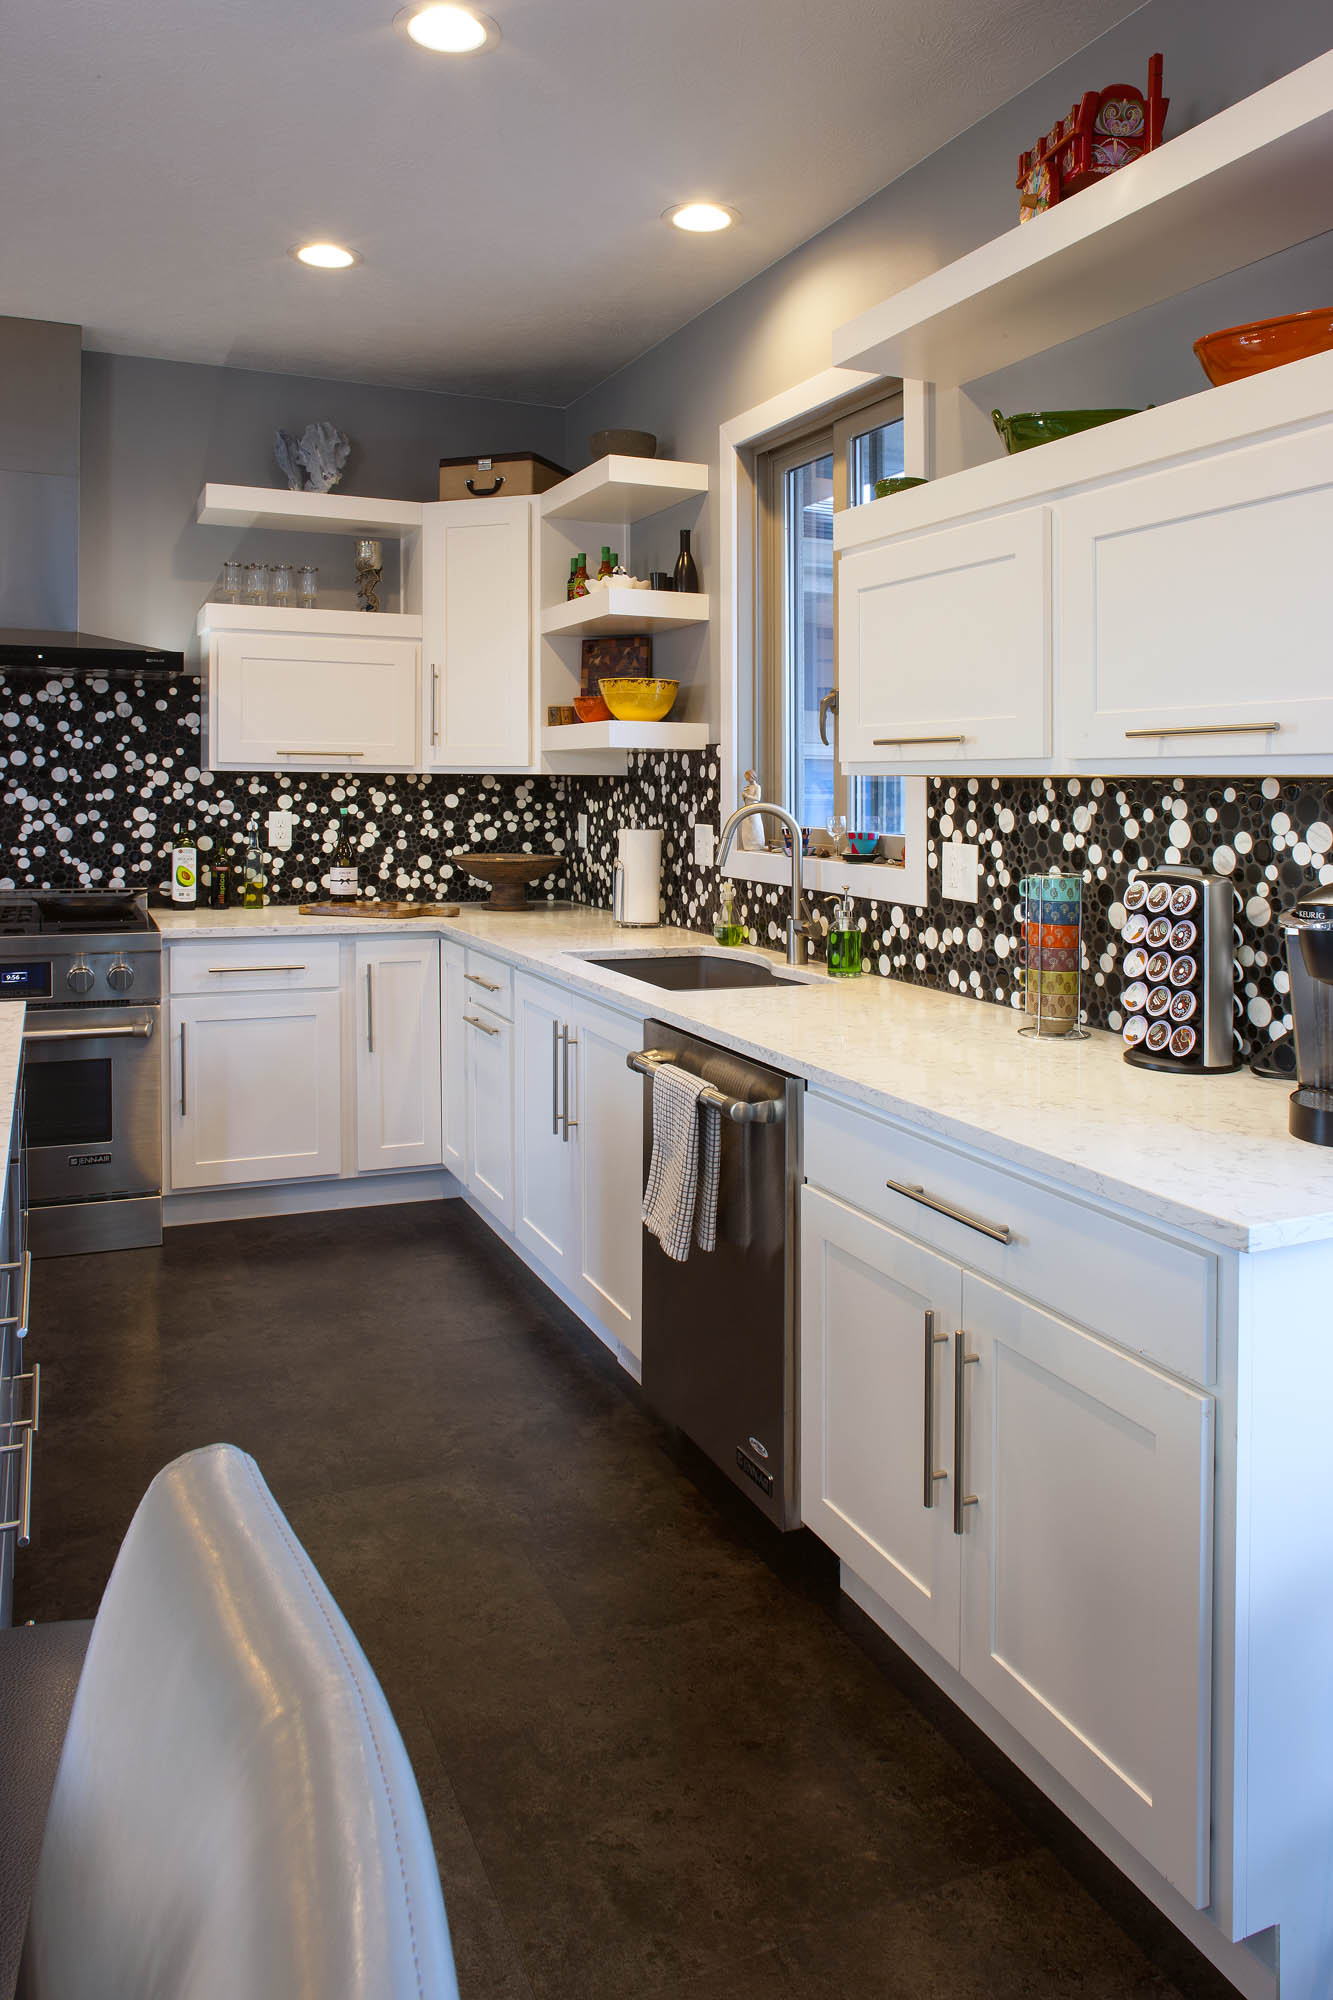 Painted Kitchen Cabinets In White By Showplace Cabinetry   View 2